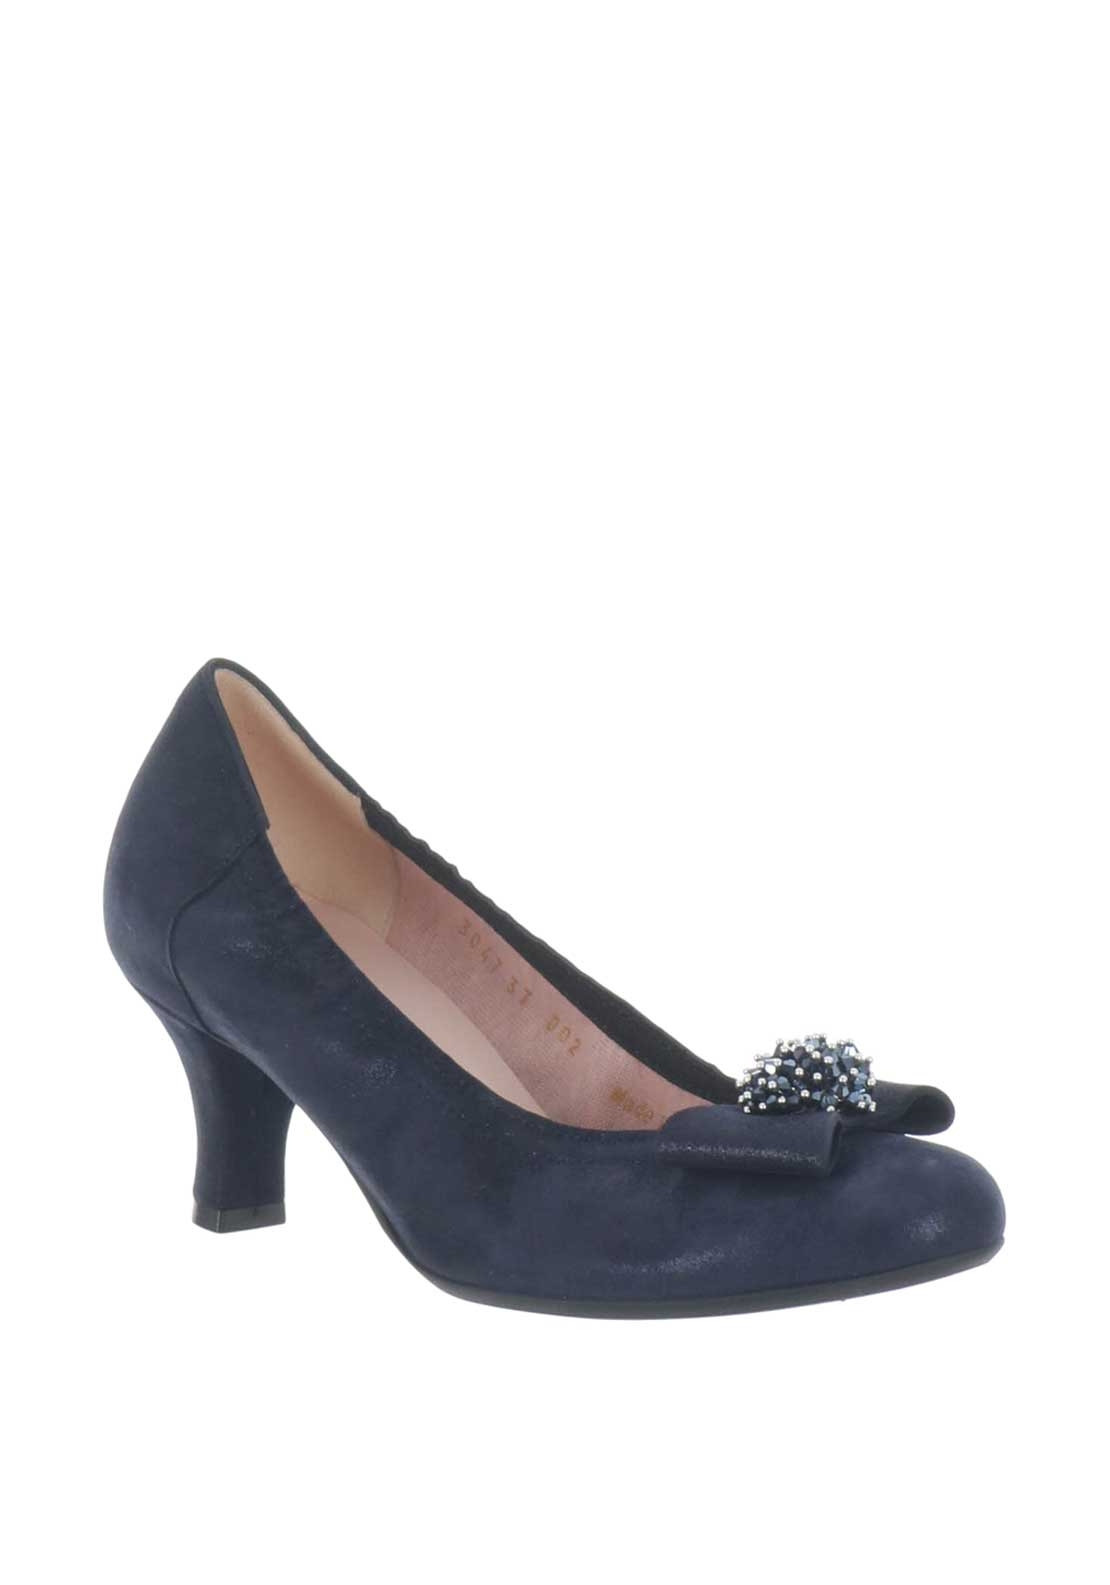 Le Babe Suede Shimmer Mid Heel Shoes, Navy